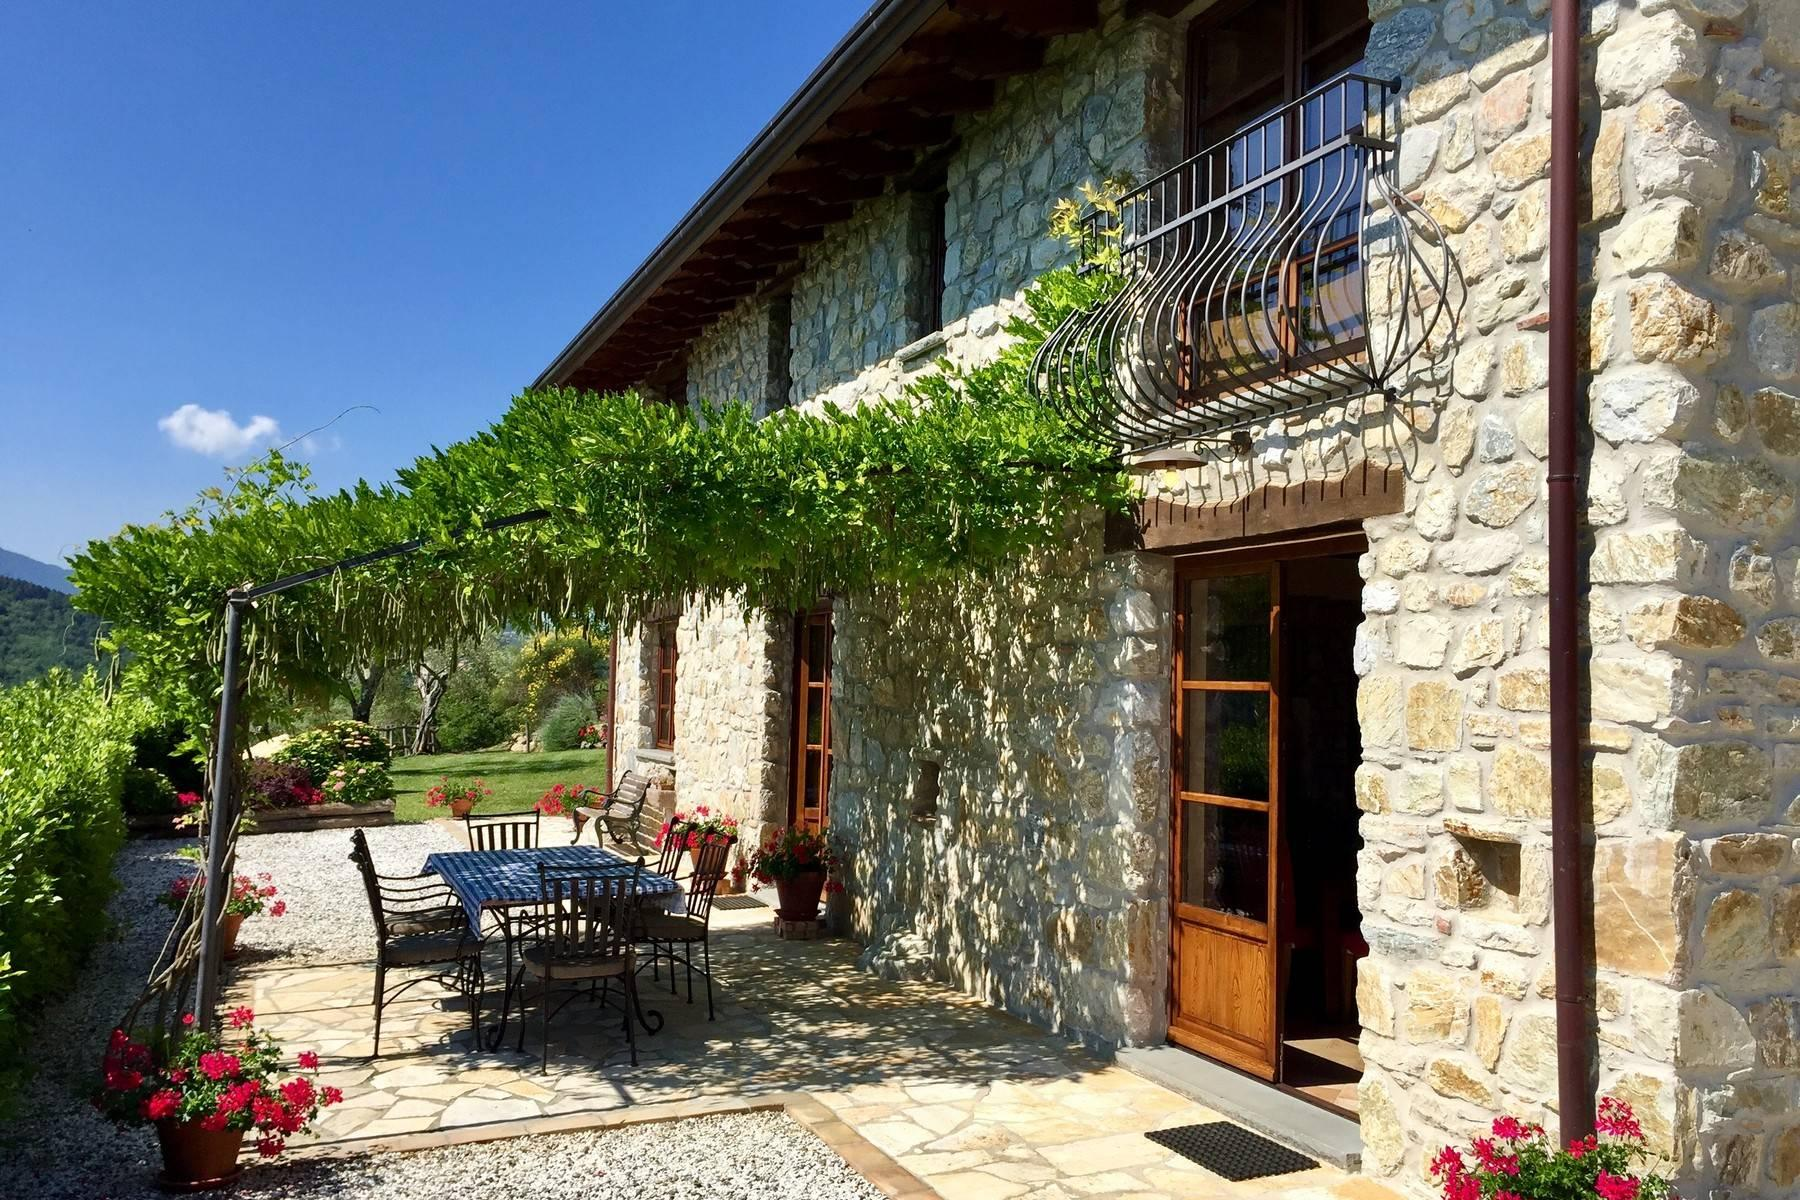 Delightful country house on the Lunigiana's hills - 21